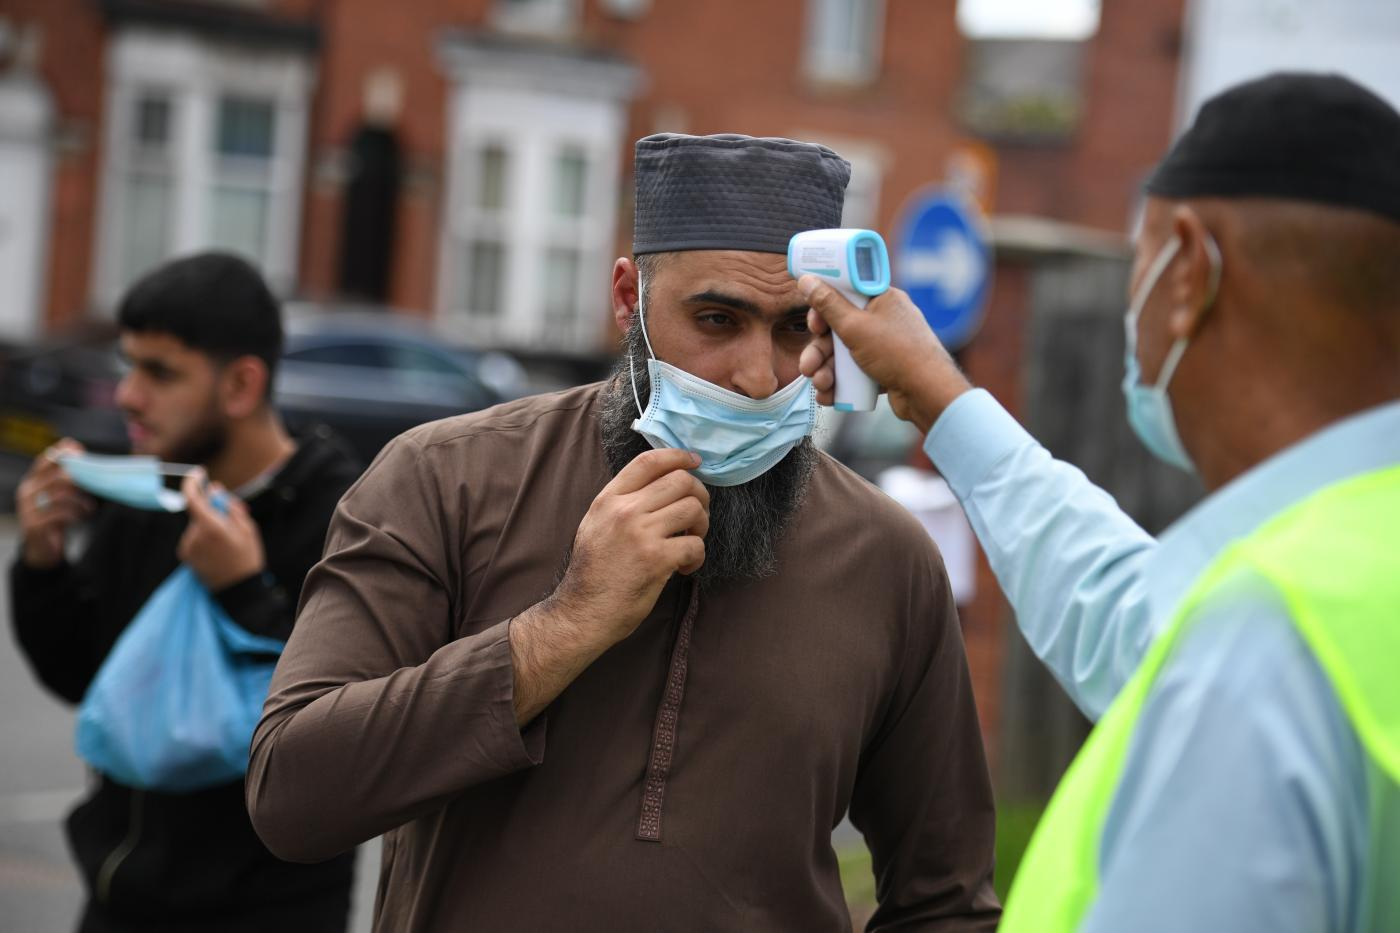 The Scapegoating of Muslims During a Pandemic